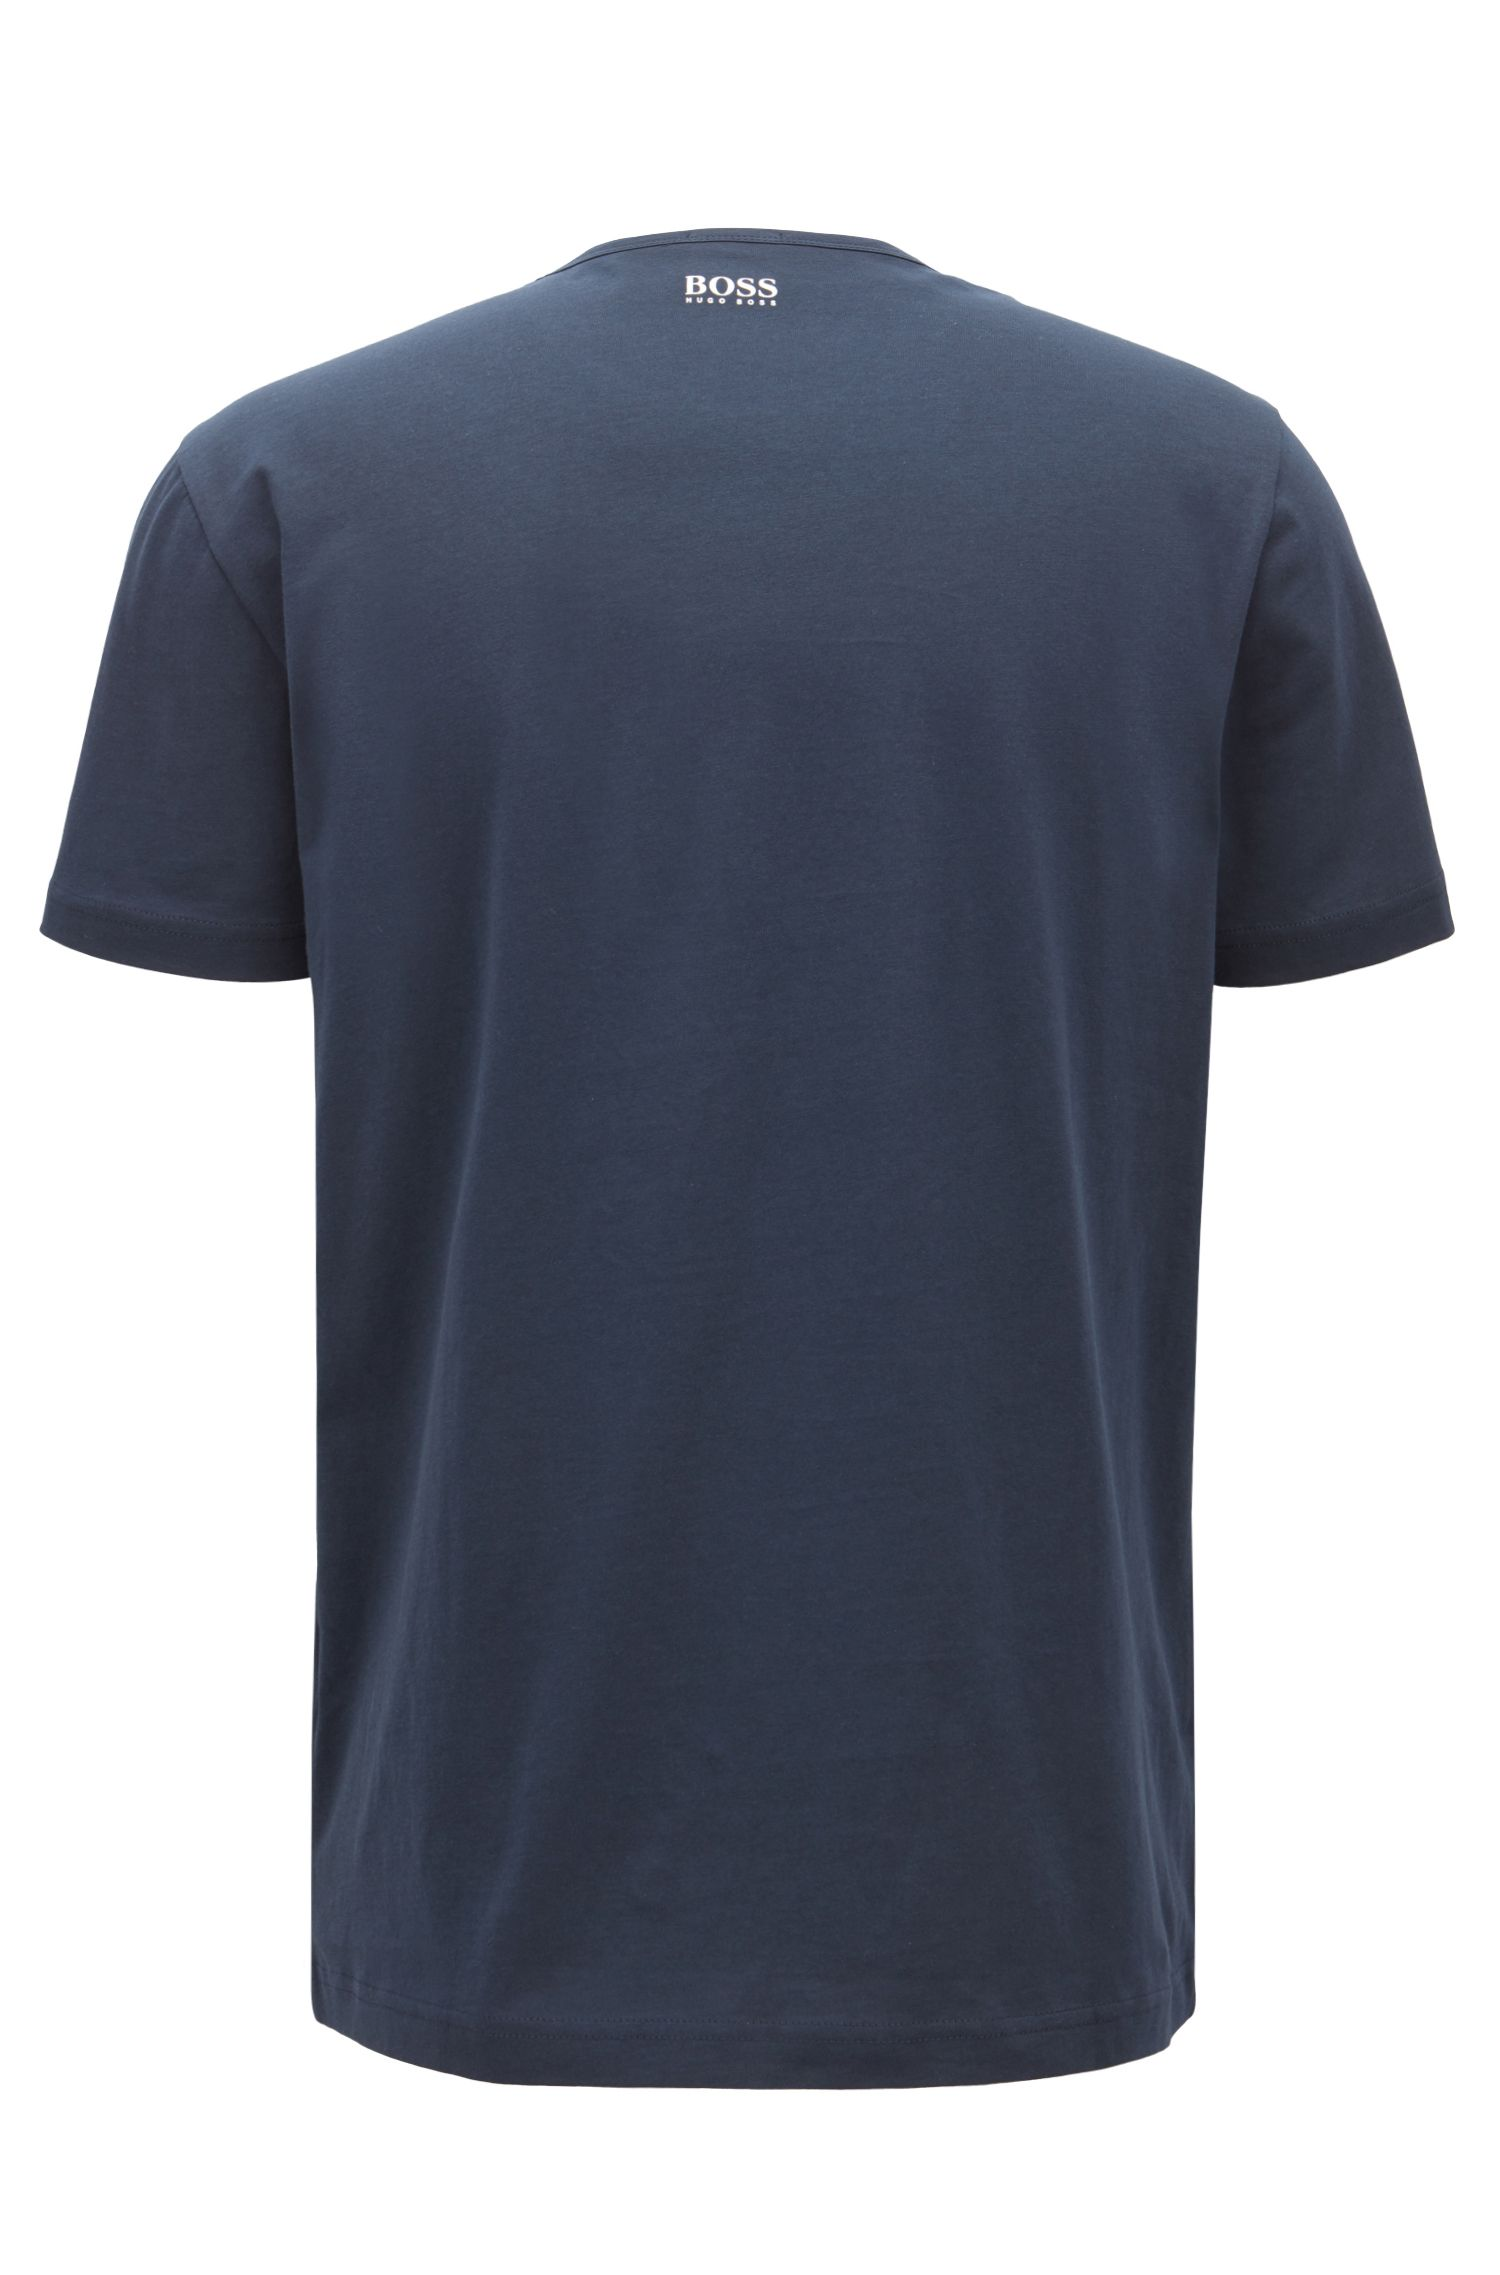 Short-sleeved printed T-shirt in single-jersey cotton, Dark Blue